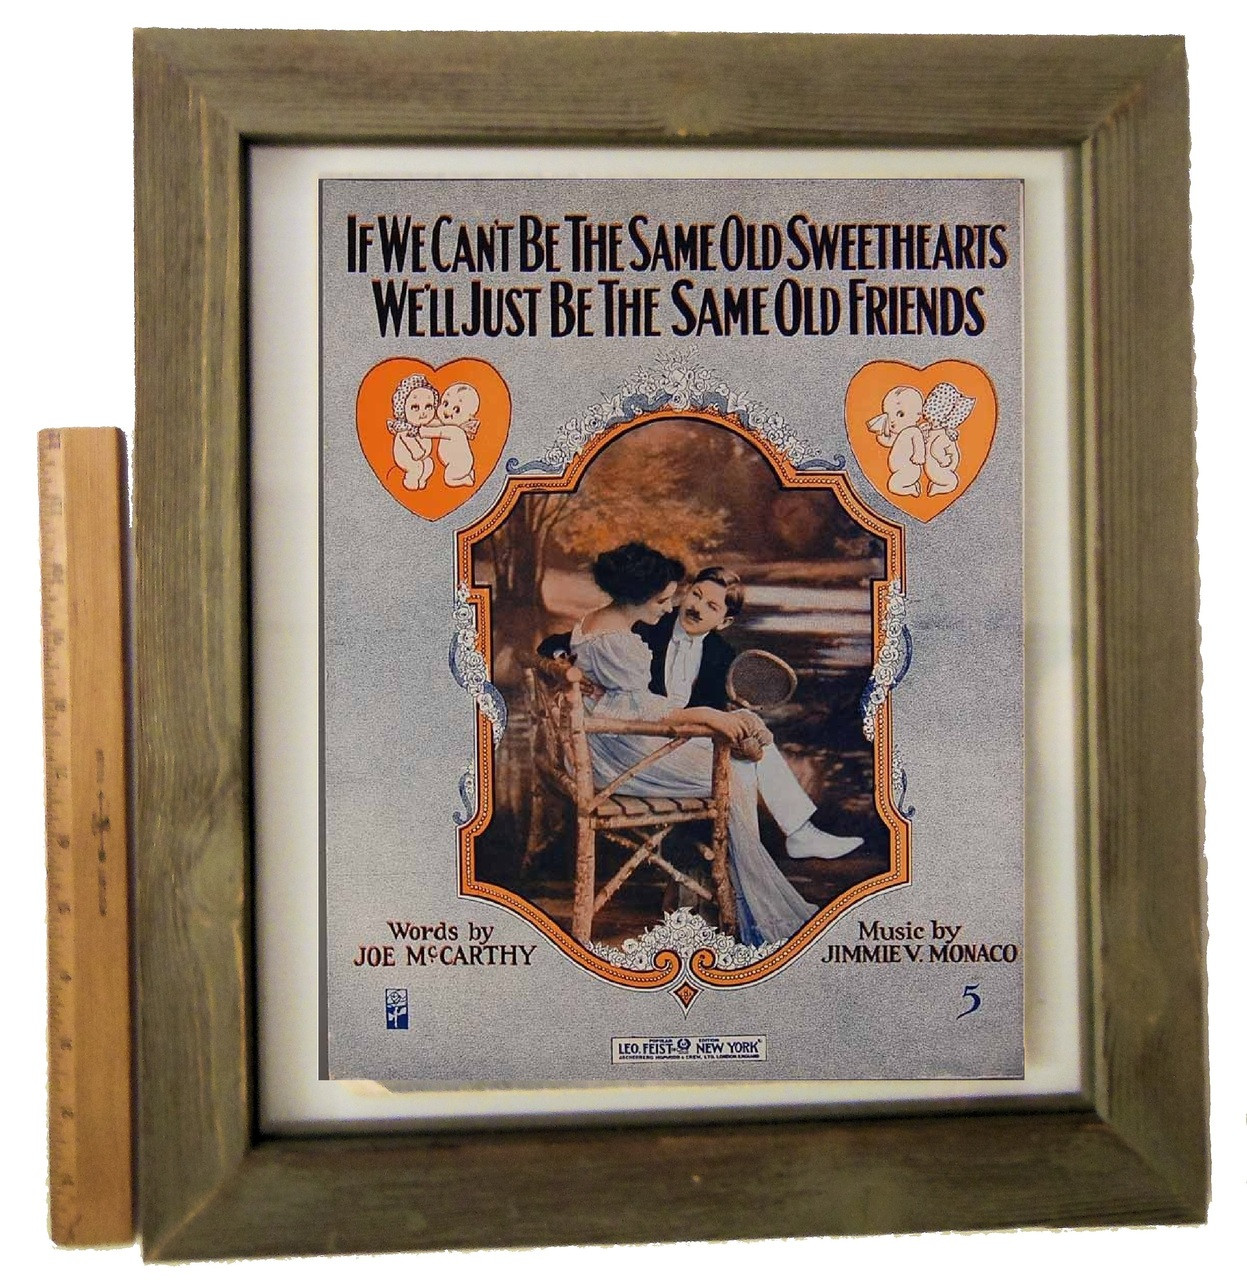 If We Can't Be the Same Old Sweethearts, We'll Just Be the Same Old Friends: Vintage sheet music, framed.